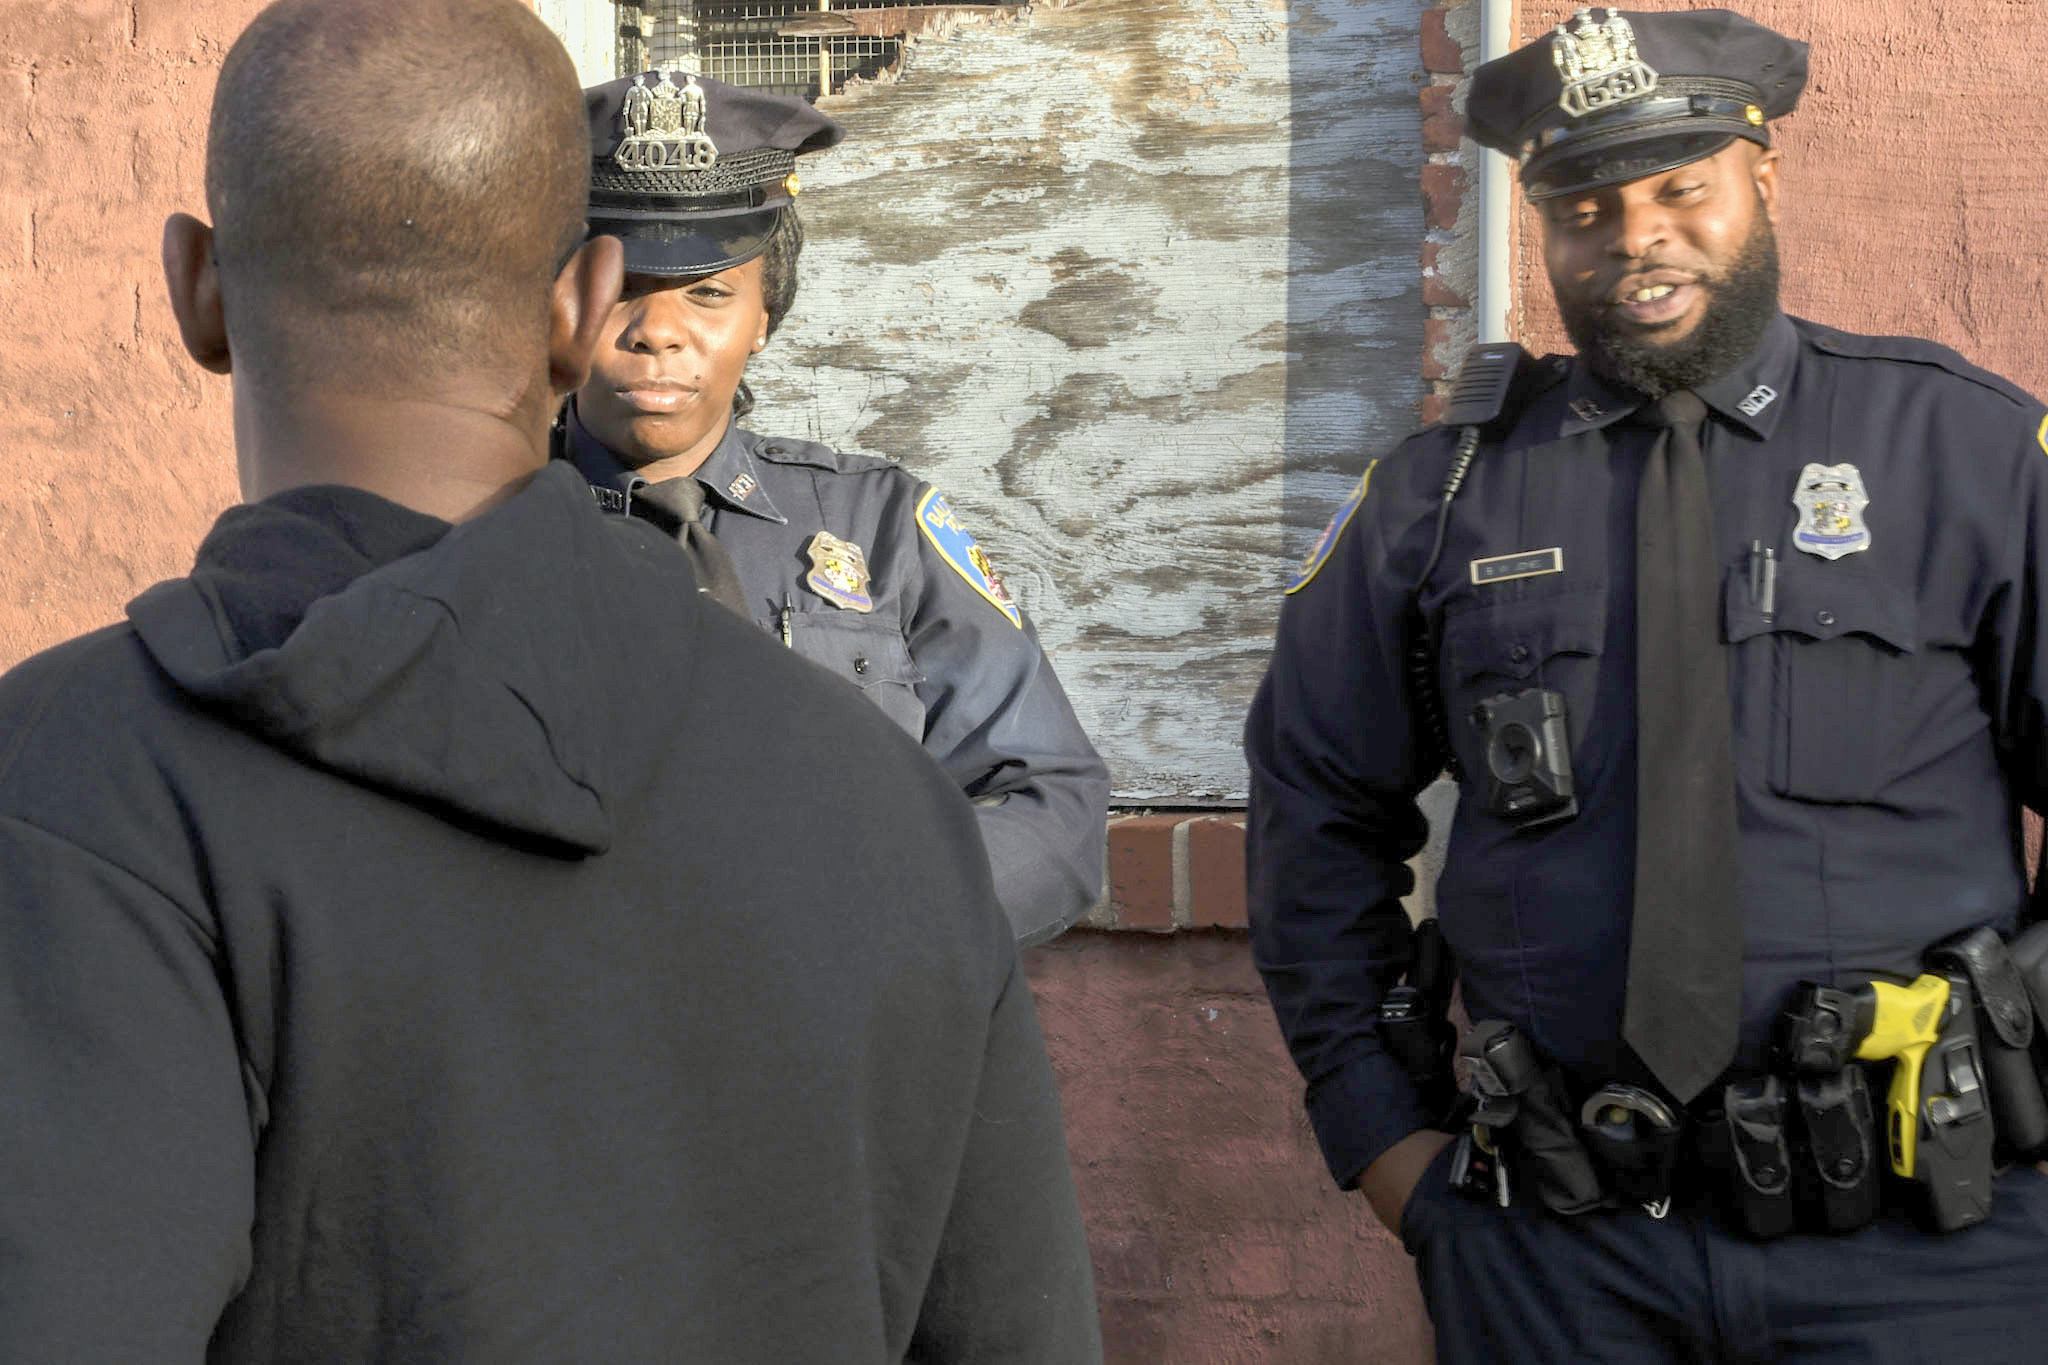 Baltimore Police and residents toured the back alleys and by-ways of Sandtown-Winchester. (J.M. Giordano)